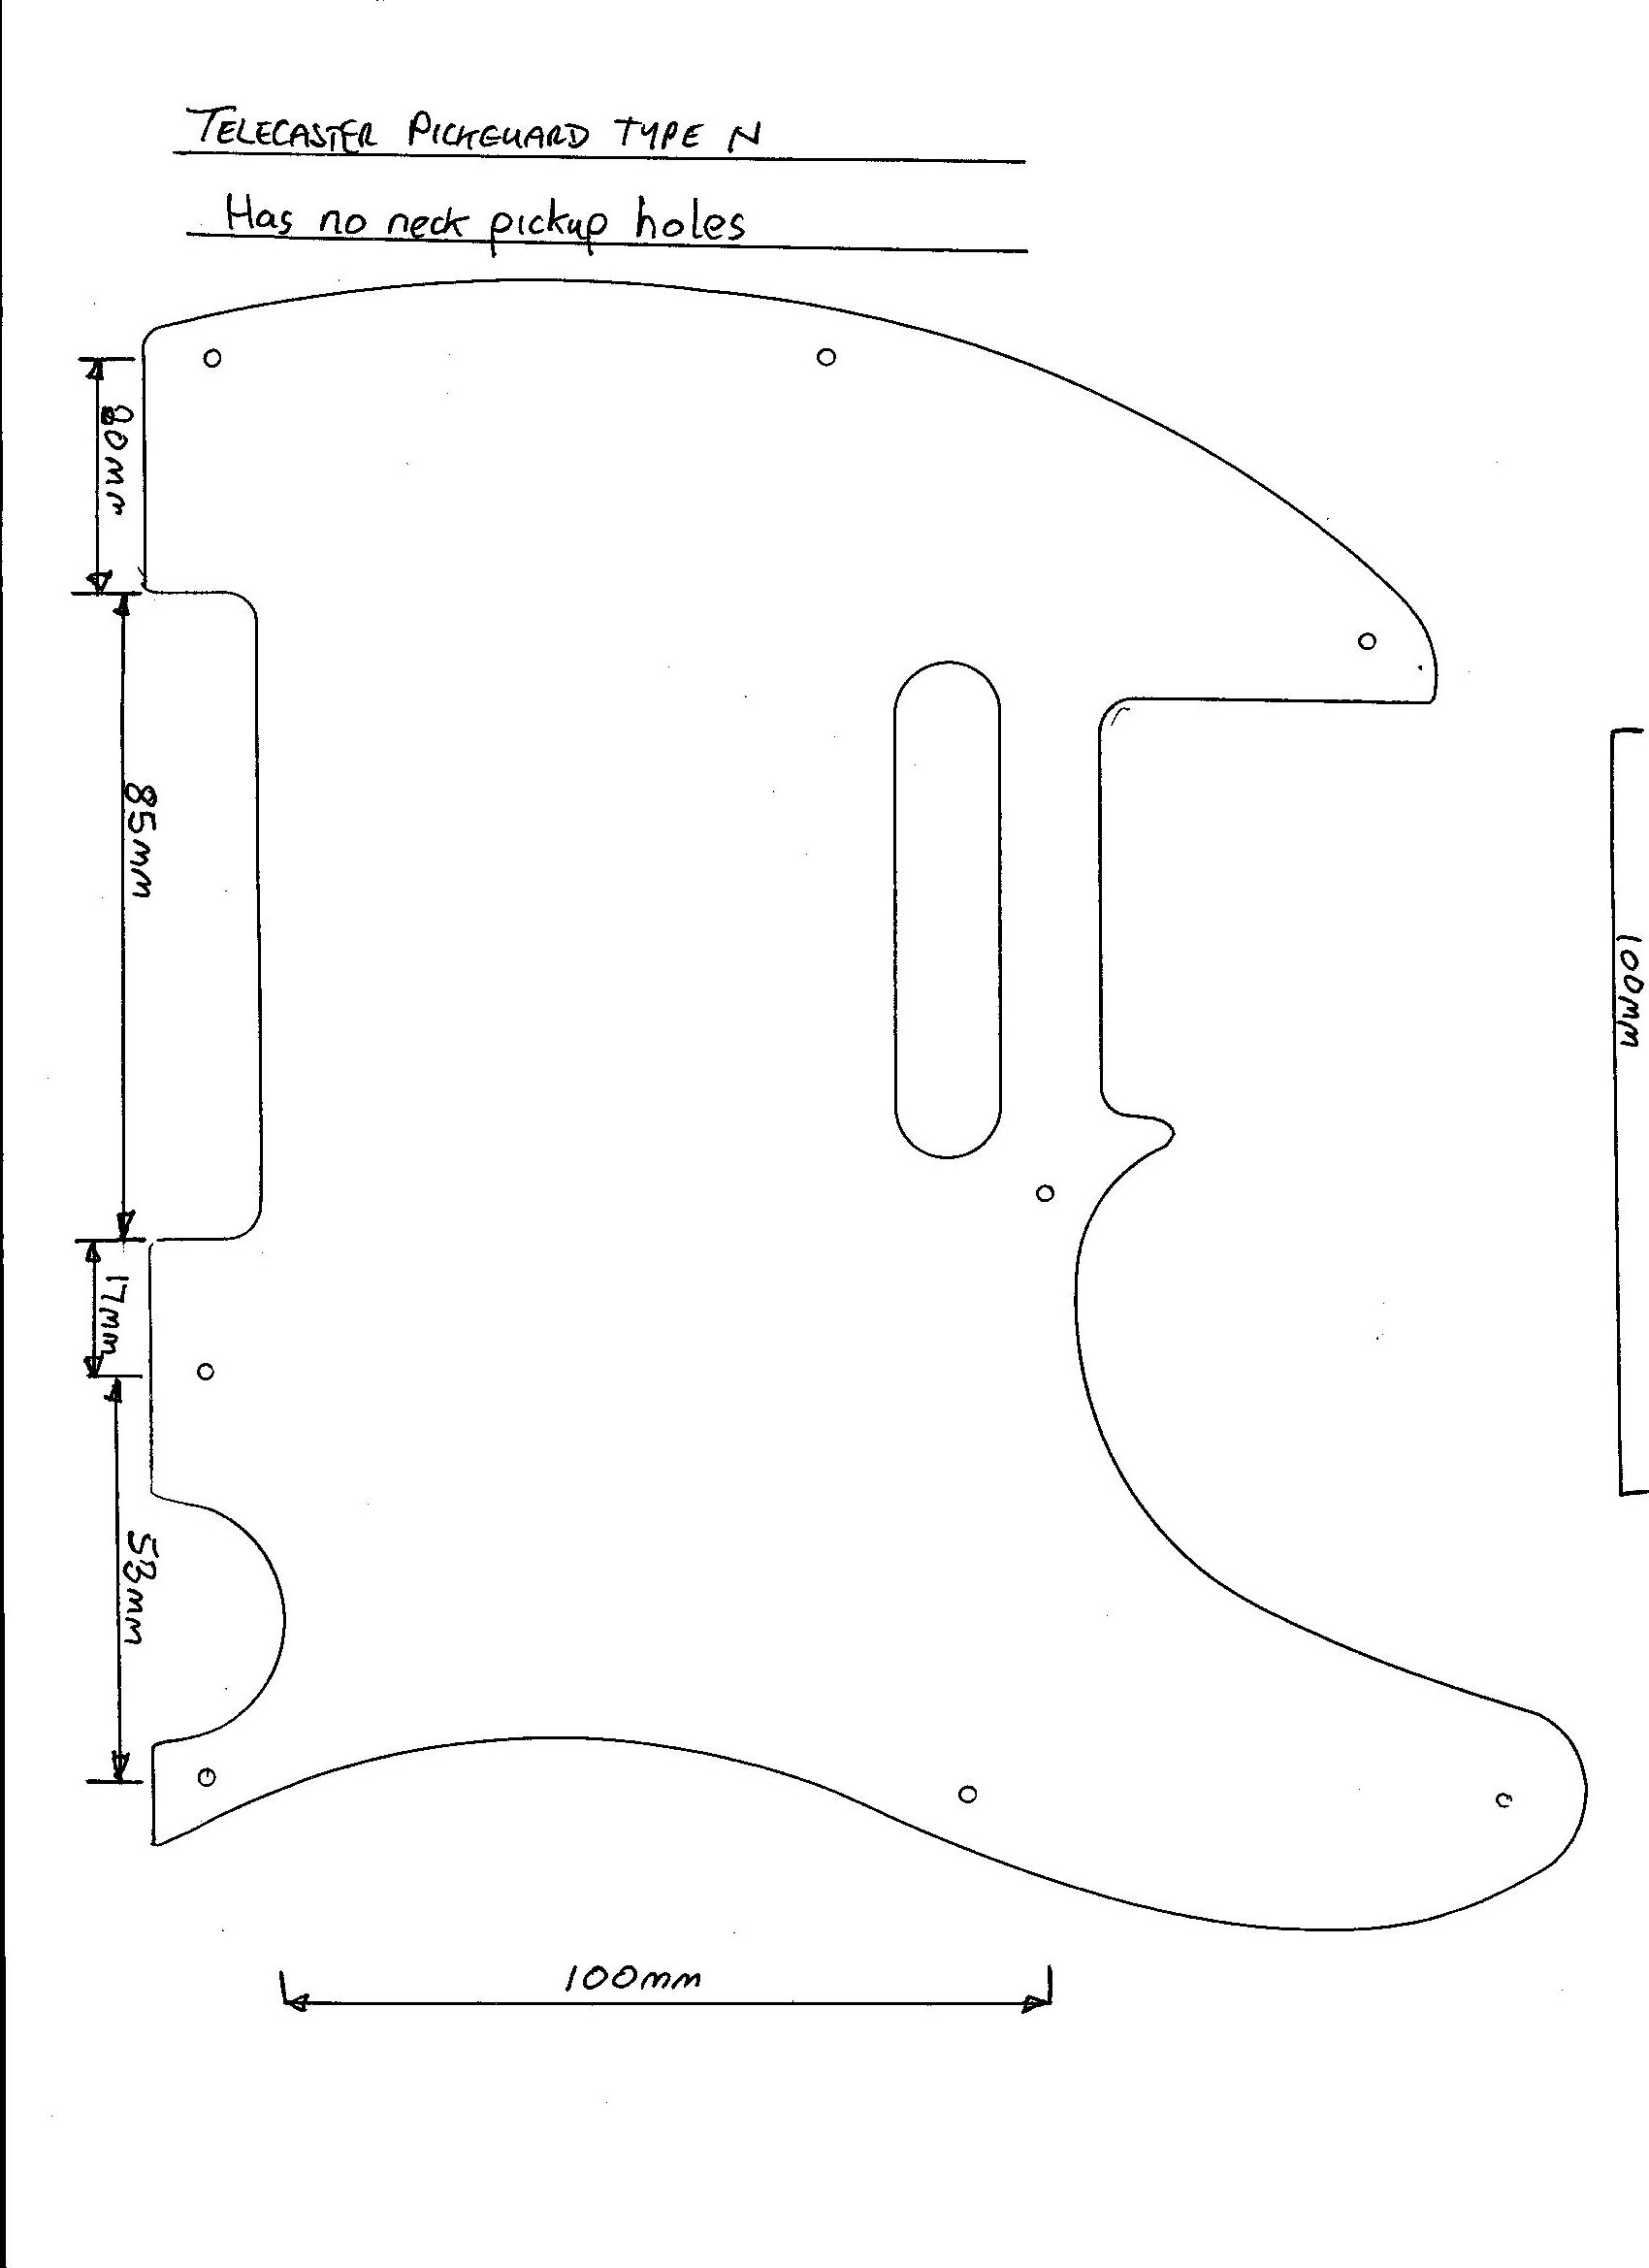 Guitar templates telecaster | norwegian wood